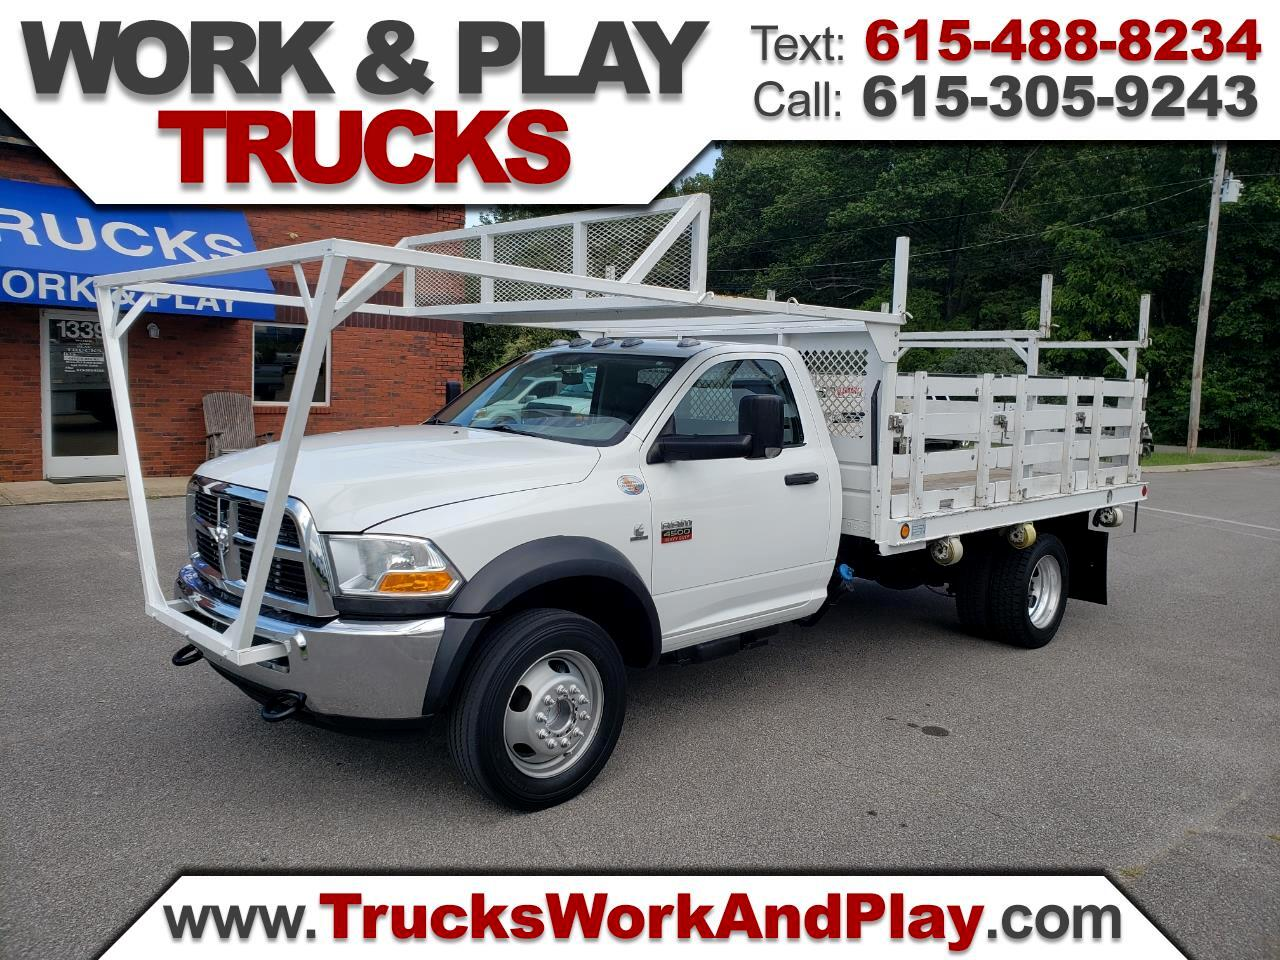 2012 Dodge Ram 4500 Regular Cab 2WD